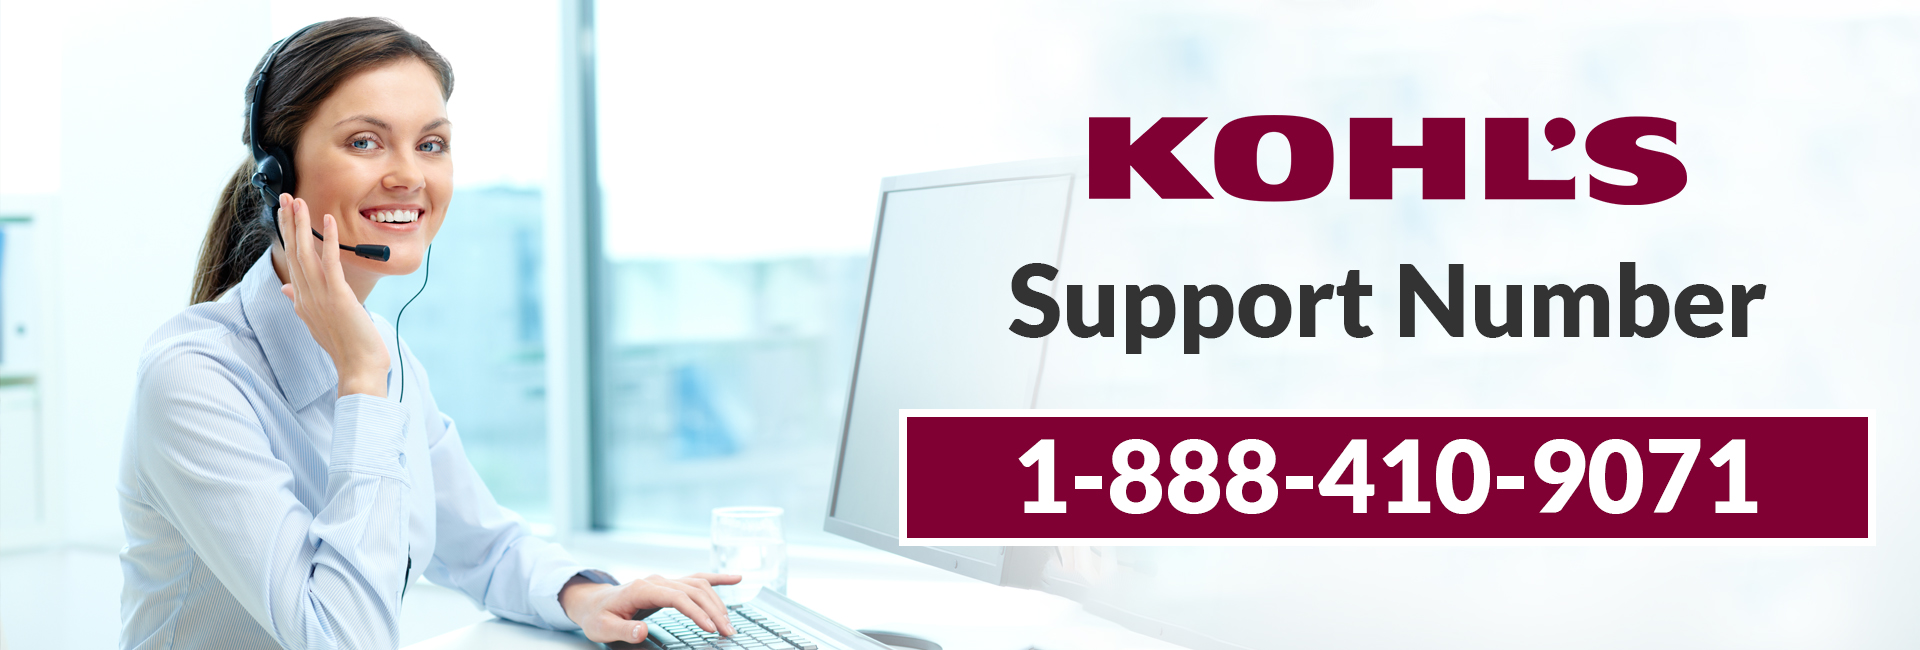 Kohls Customer Service 1-888-410-9071